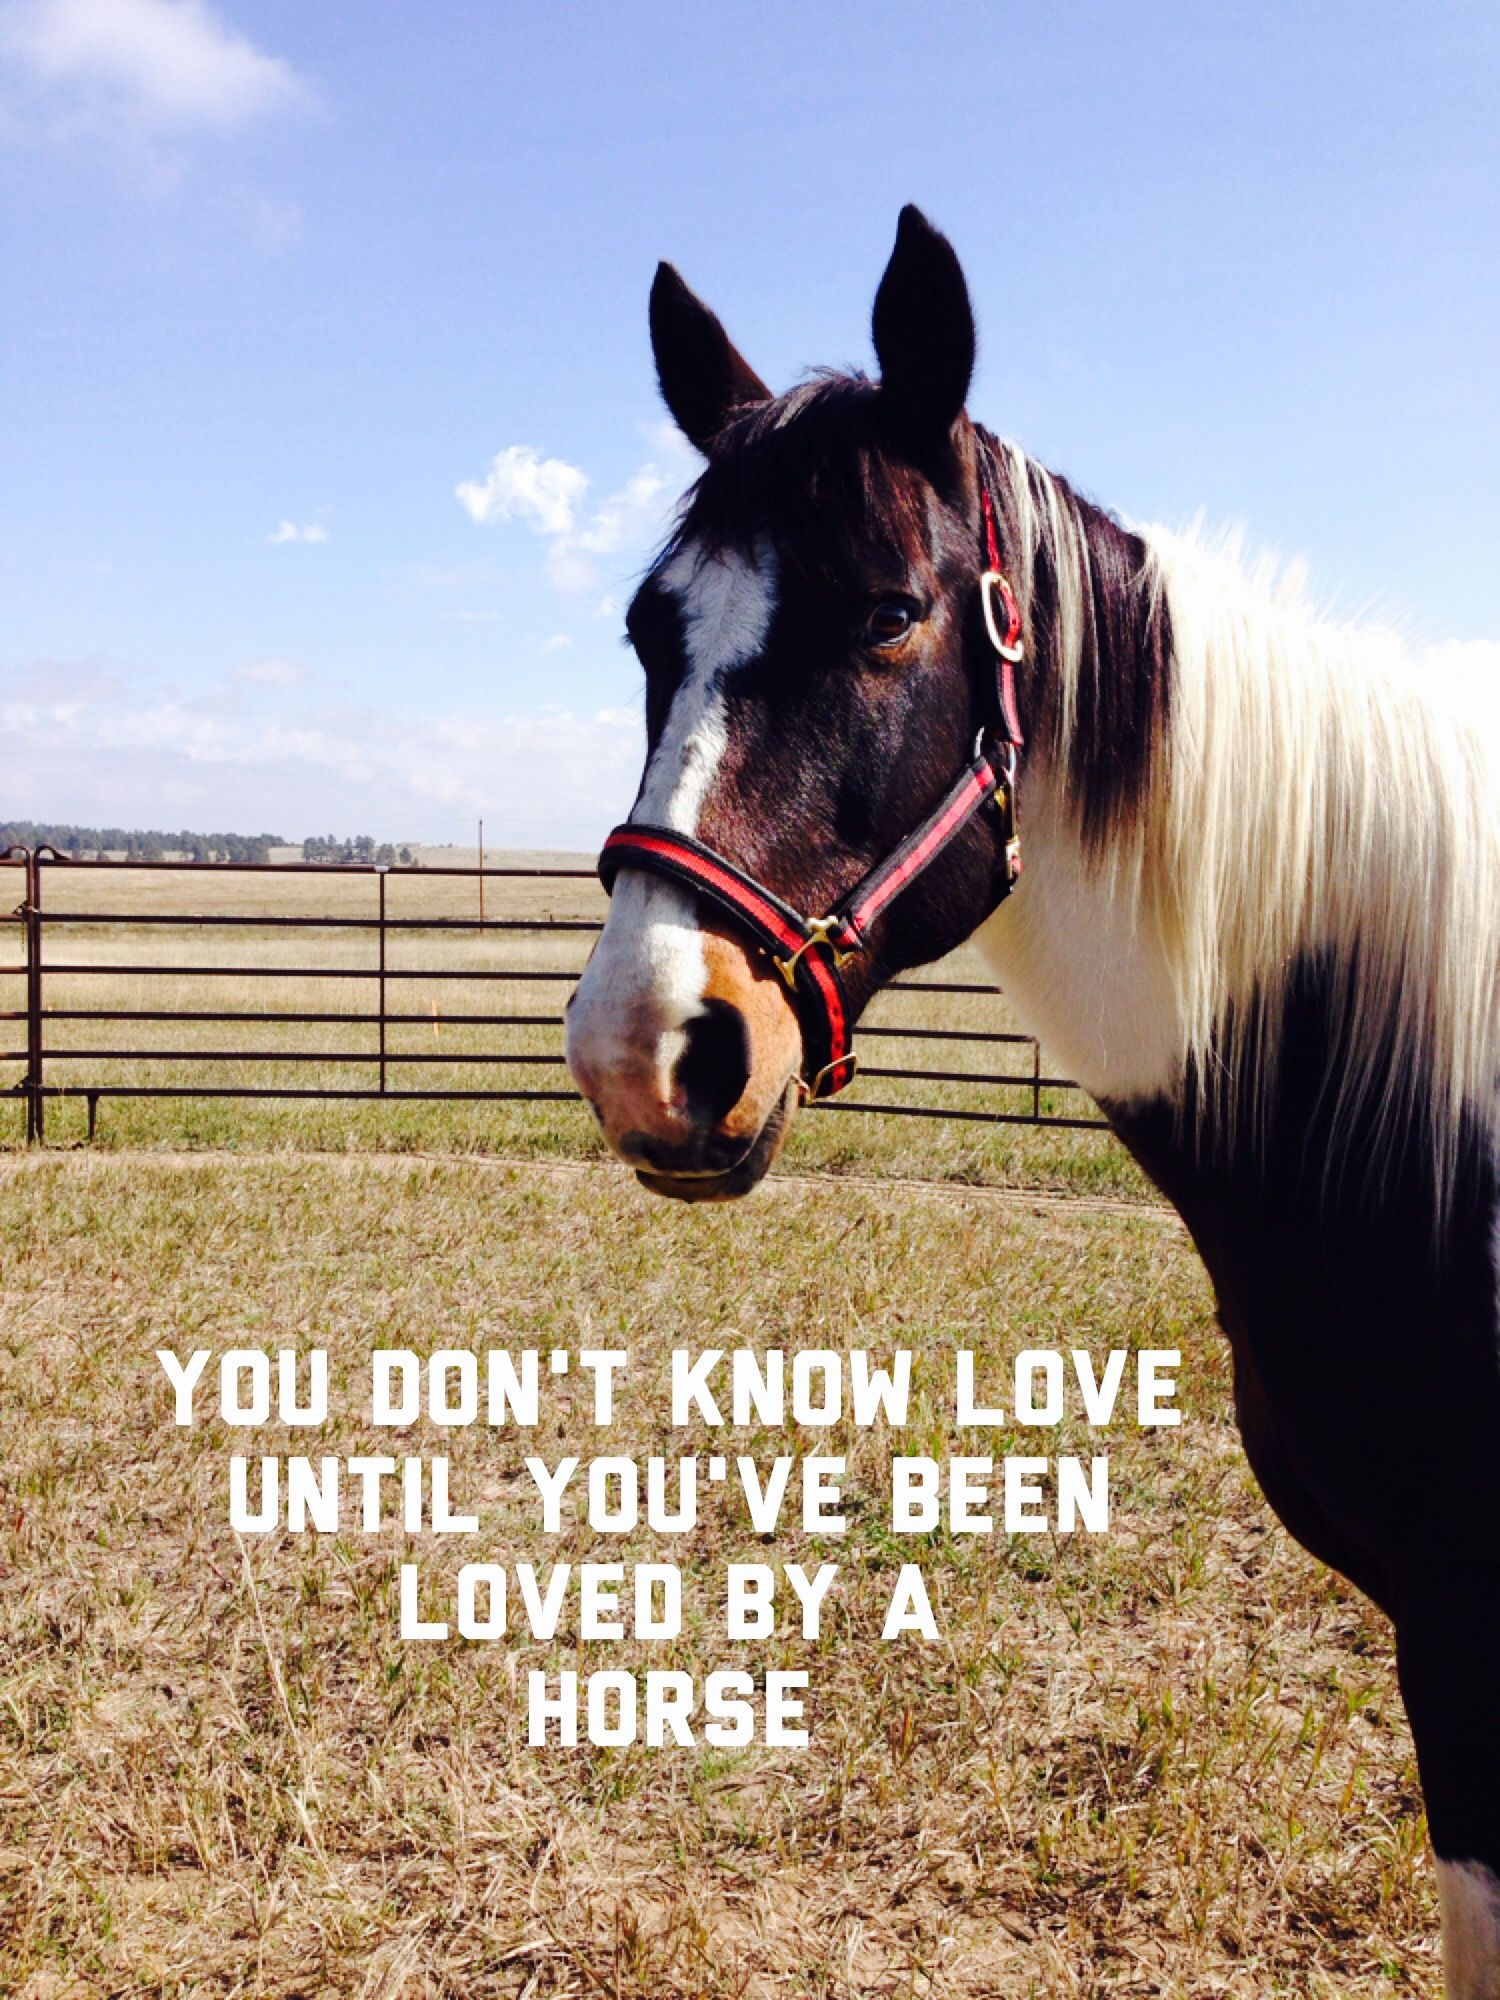 So true. This is the most beautiful and best horse ever